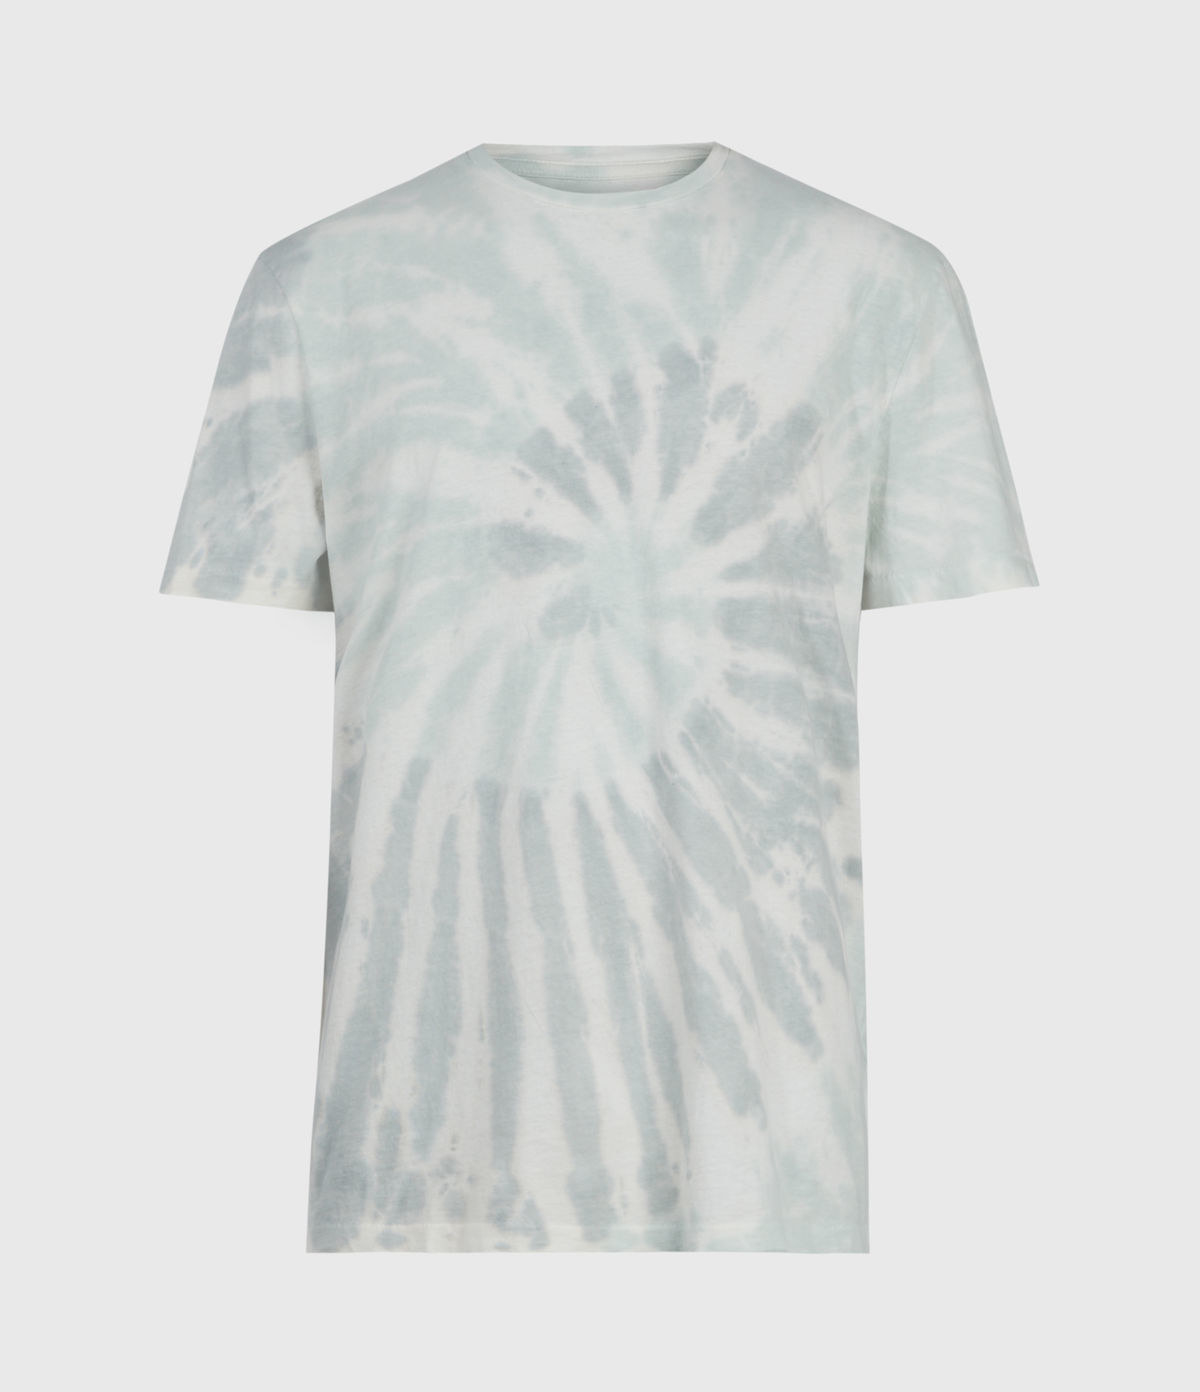 light blue faded tie-dye T-shirt with swirl pattern on center of chest.